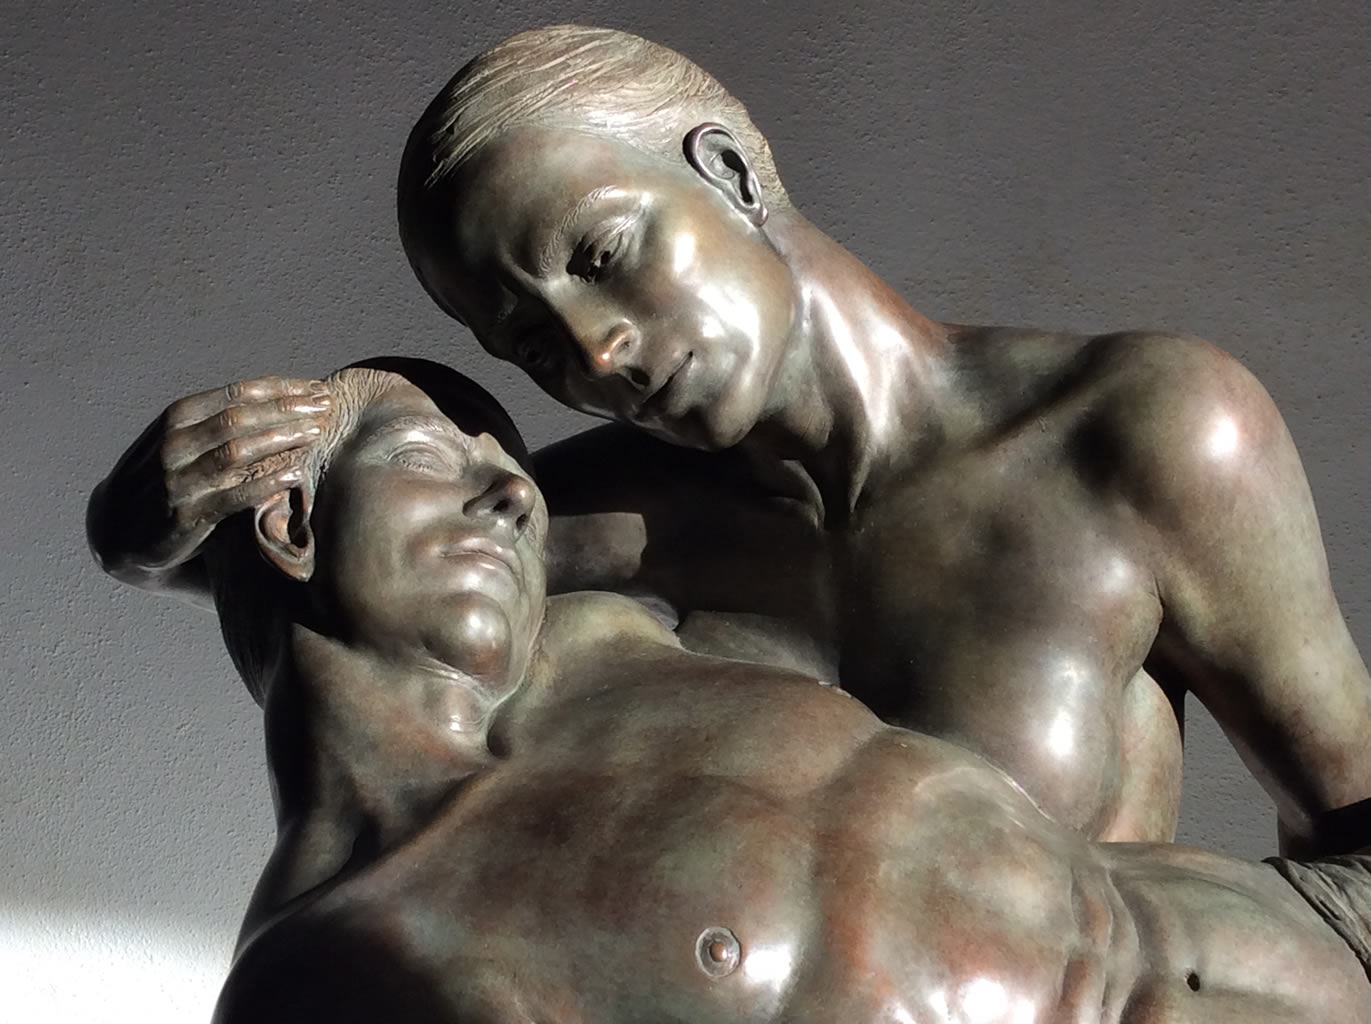 Figurative Bronz sculpture by Margot Homan